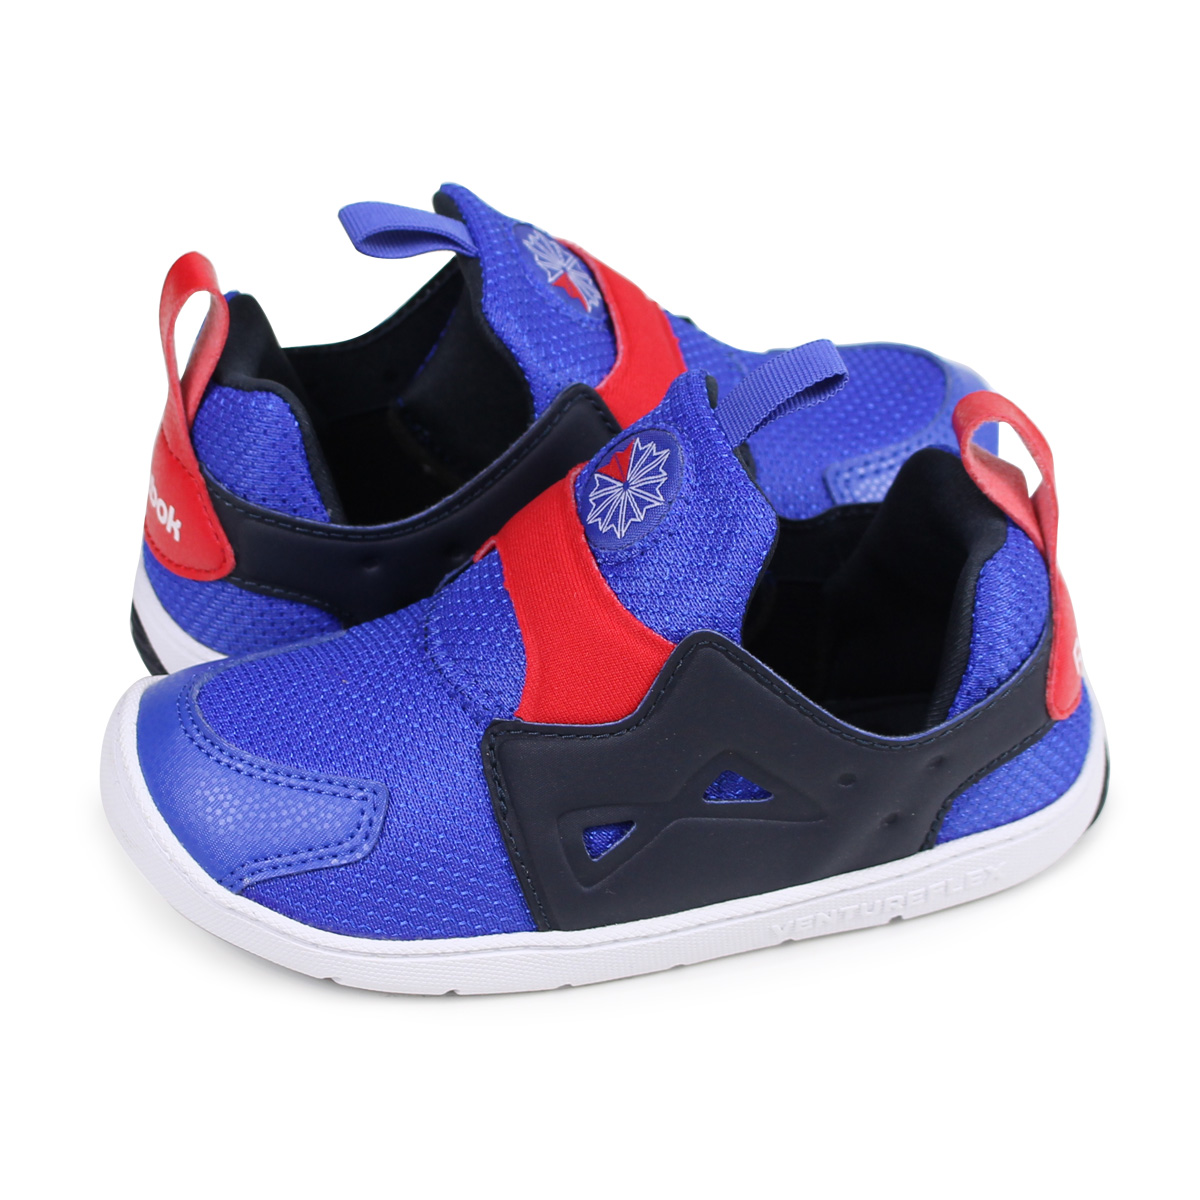 Reebok VENTURE FLEX 2.0 Reebok venture flextime baby sneakers slip-ons  CM9144 blue  load planned Shinnyu load in reservation product 1 13  containing   1801  70806564e